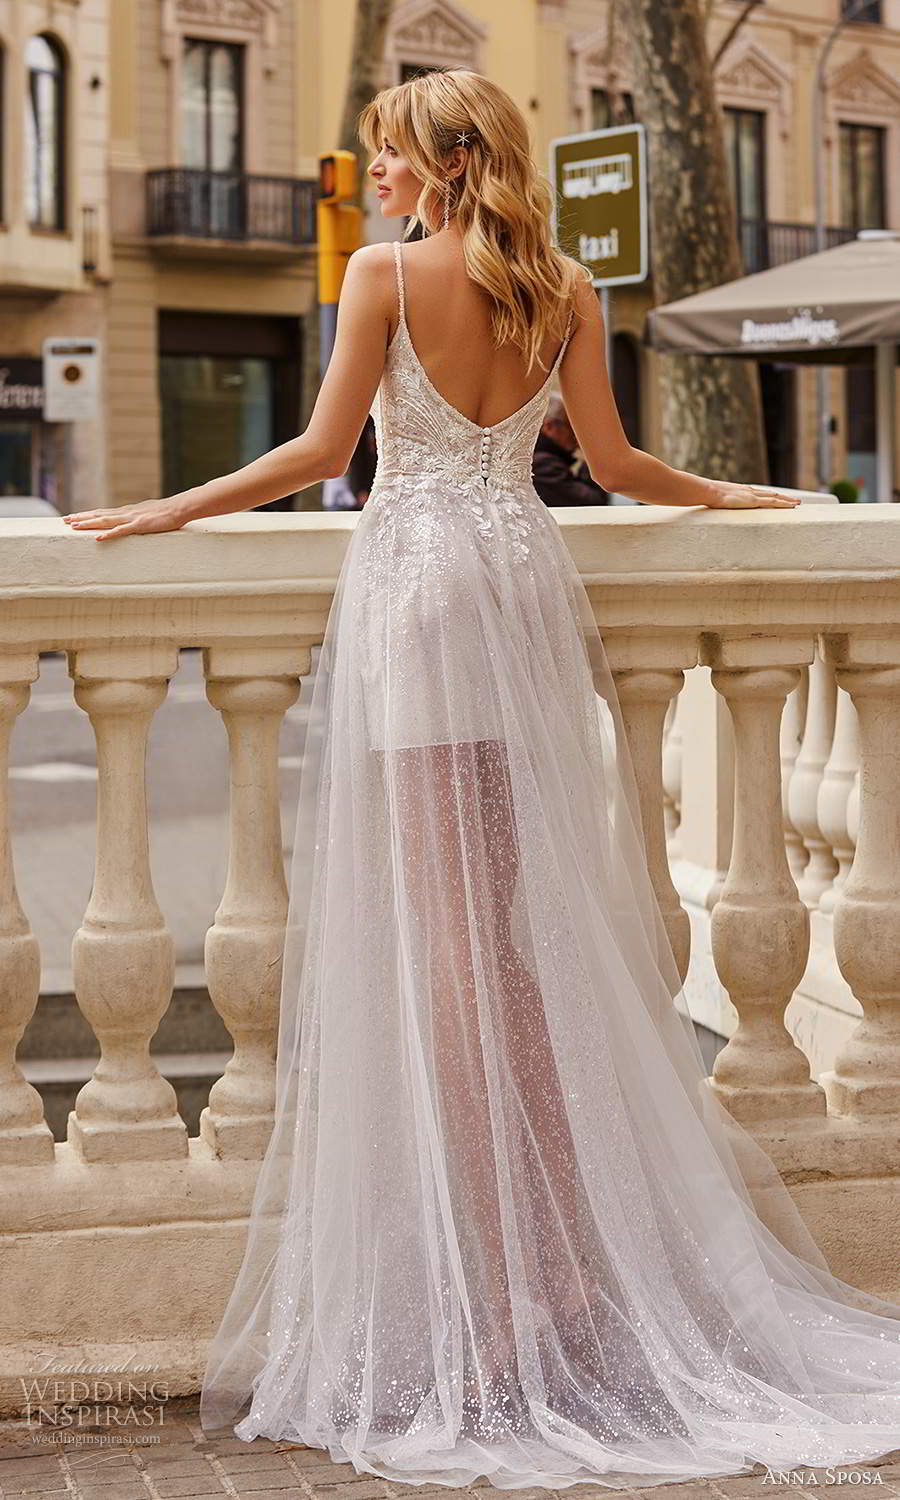 anna sposa 2021 bridal sleeveless straps plunging v neckline fully embellished a line ball gown wedding dress slit sheer skirt chapel train (9) bv